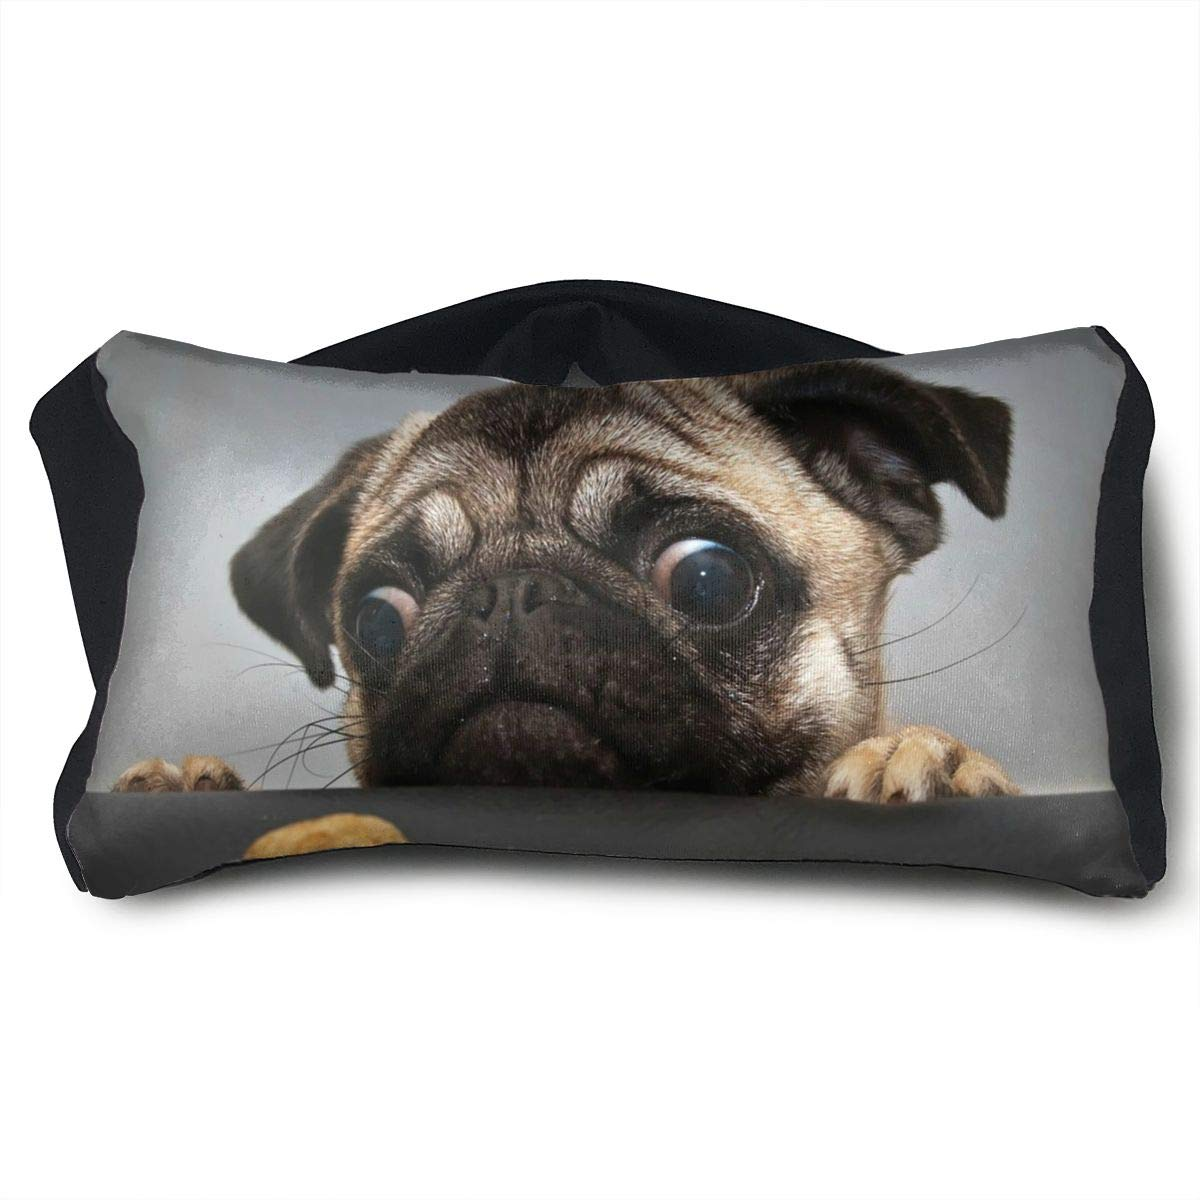 SUNNMOON Funny Animal Bulldog Want to Eat Neck Travel Pillow and Eye Mask Compact Versatile and Pillow for Airplanes, Travel Pillow and Eye Mask Washable Pillows